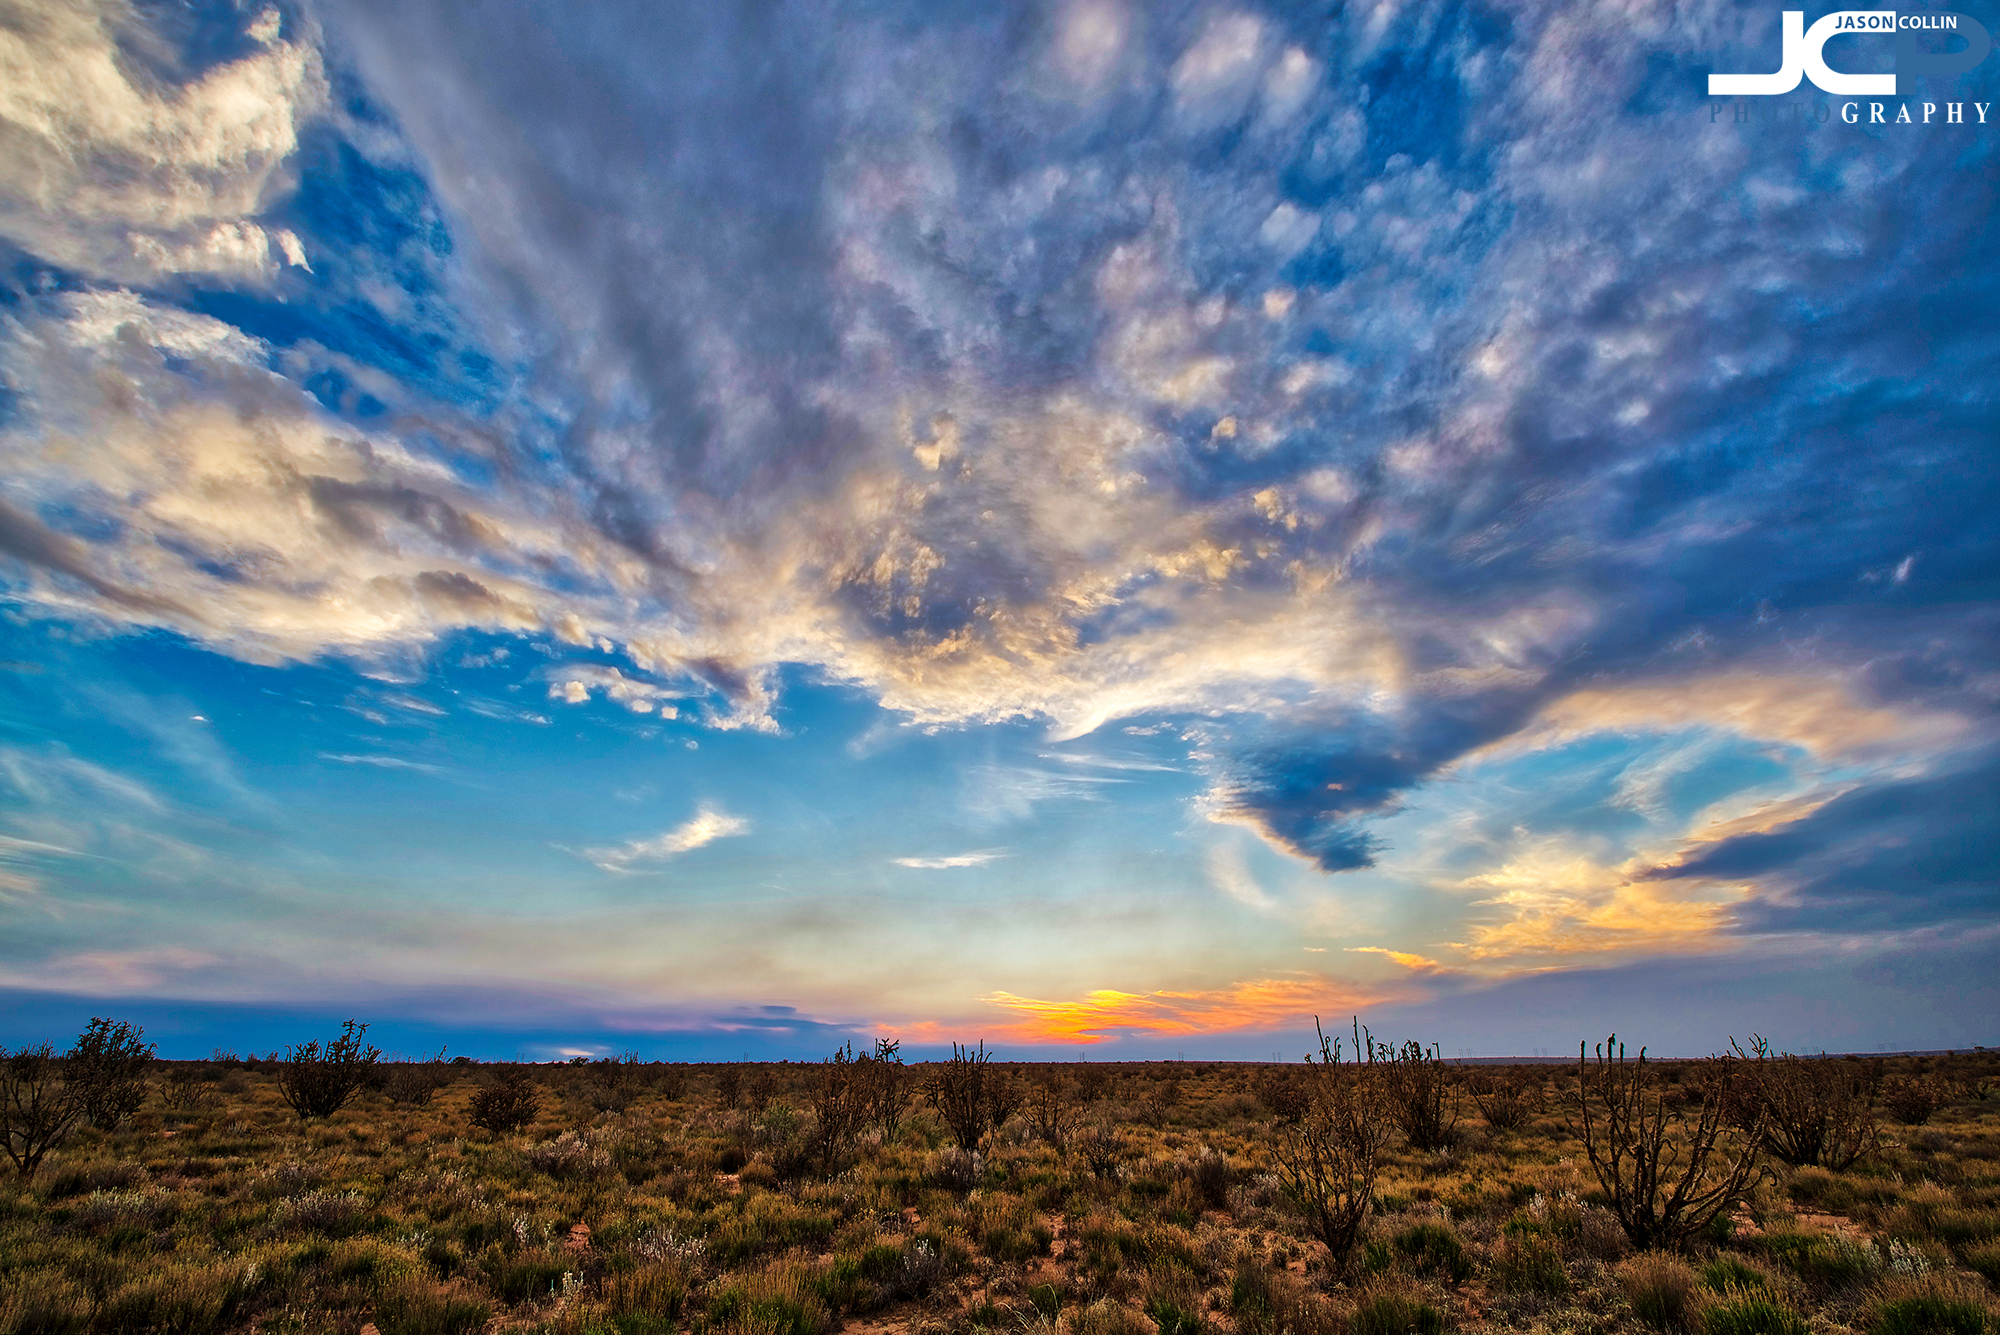 Rural Land Photography in Sandoval County Rio Rancho New Mexico off of Northern Blvd - 5-bracket HDR with Nikon D750 and Tamron 15-30mm f/2.8 lens tripod mounted